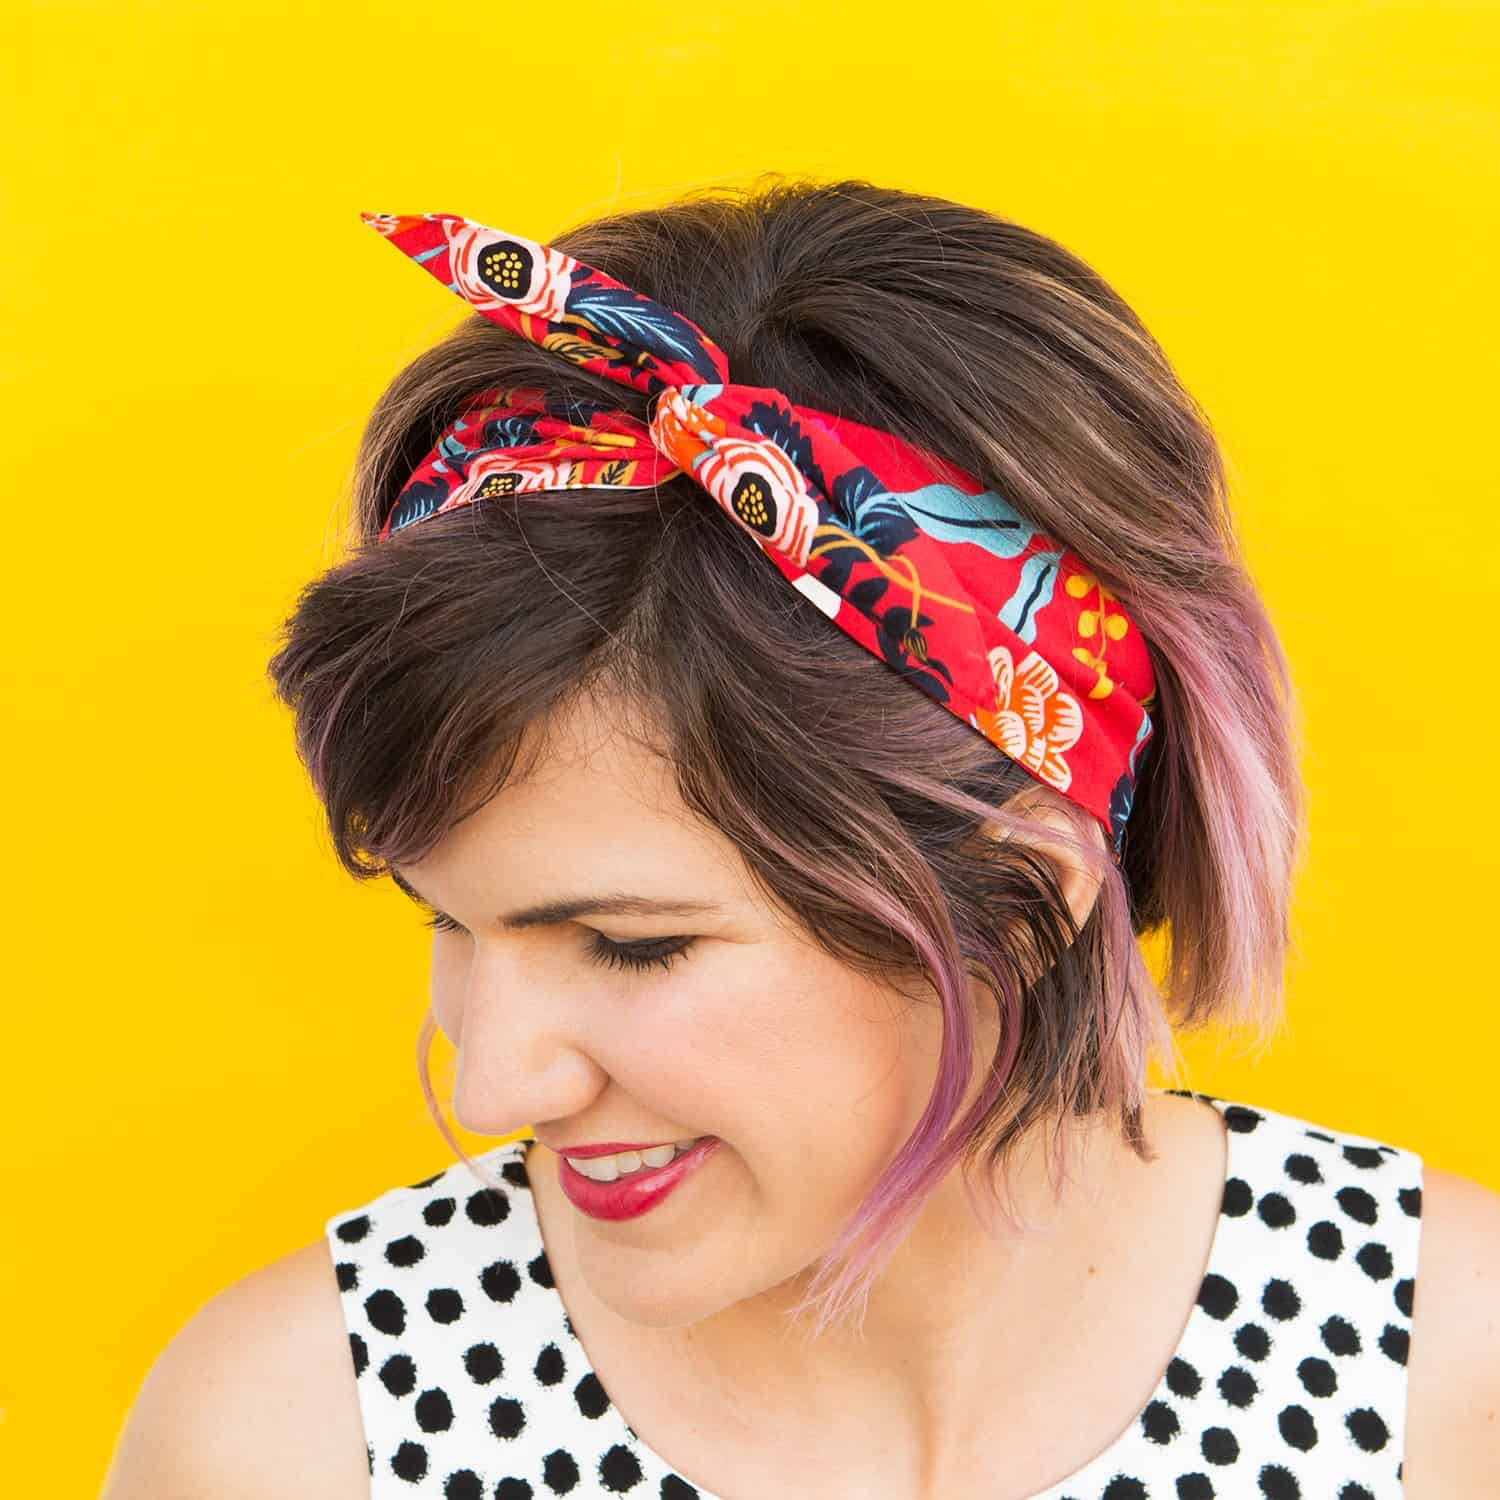 15 DIY Accessories That Look Great With Short Hair